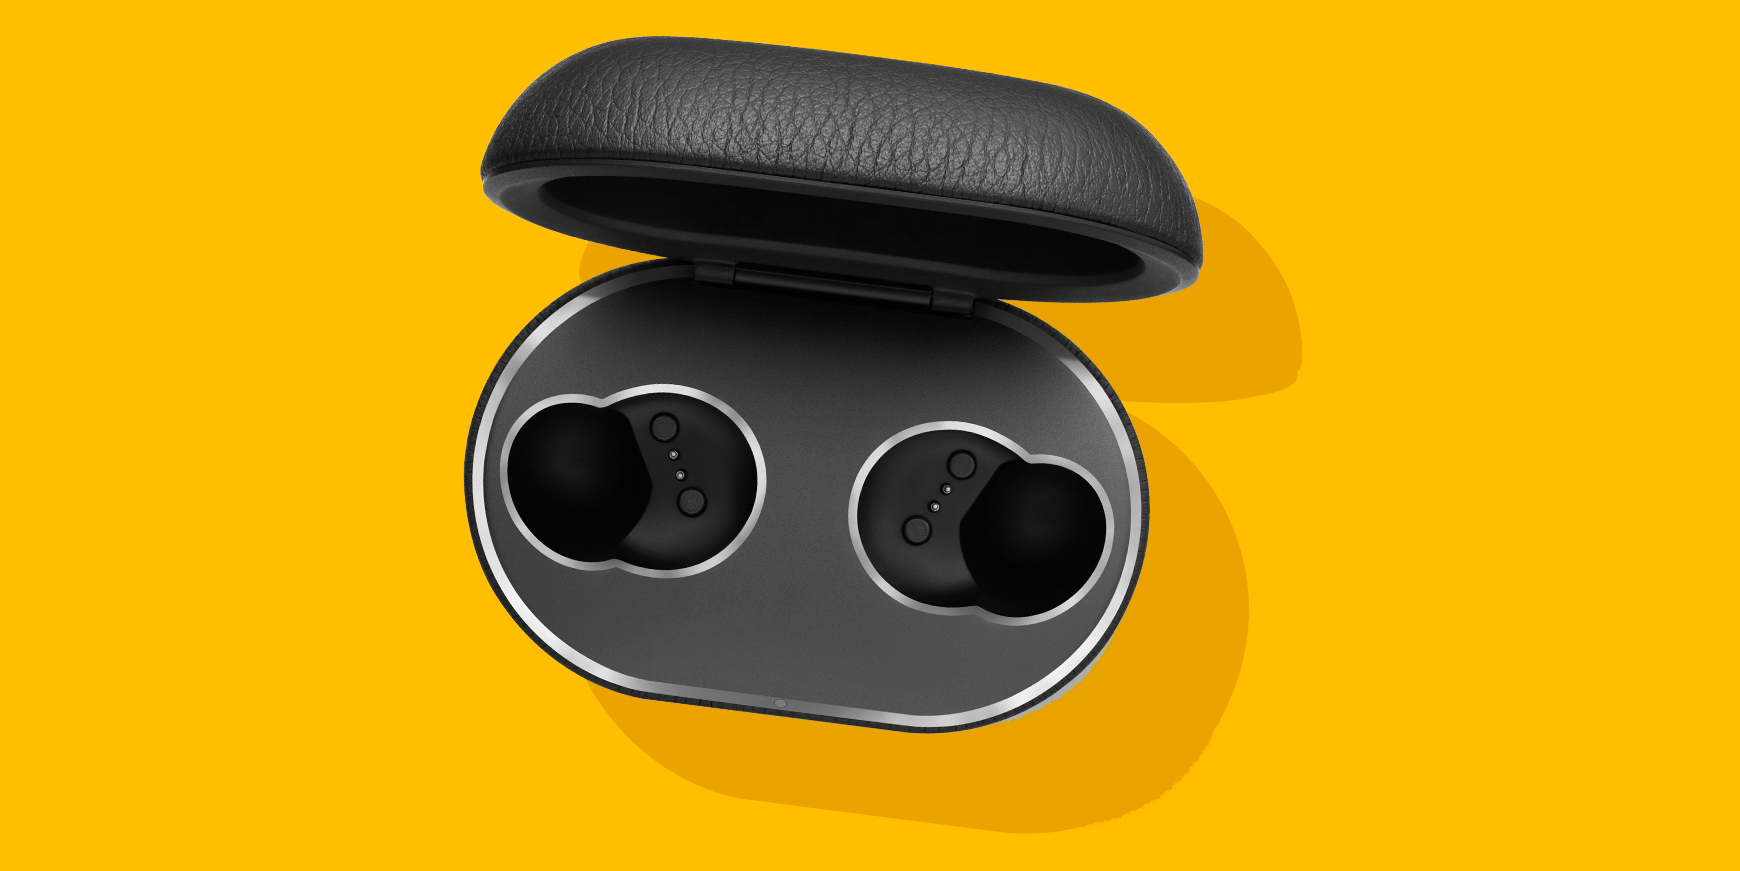 Beoplay E8 3.0